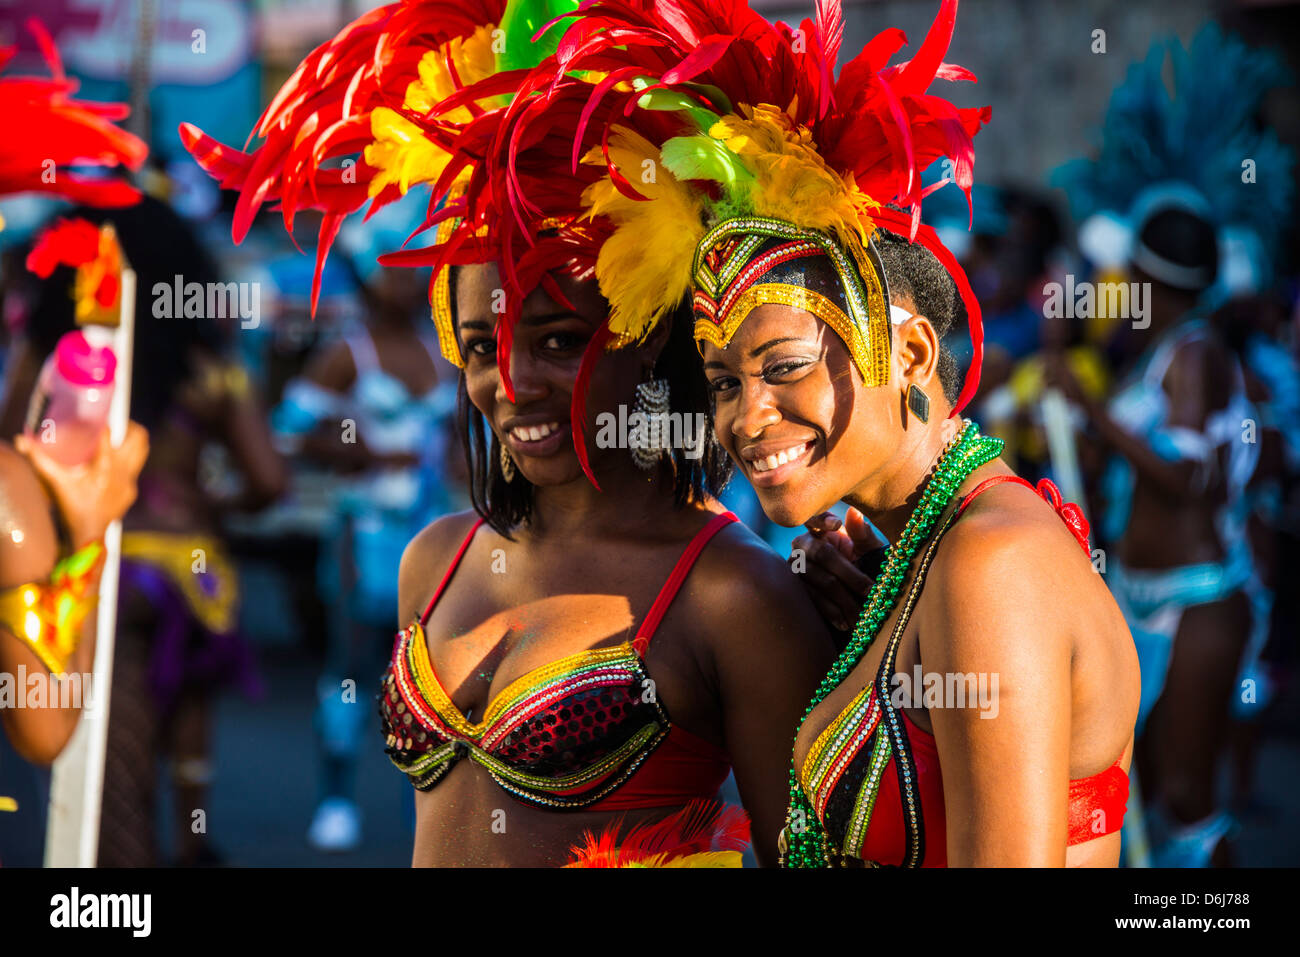 Carnival in Basseterre, St. Kitts, St. Kitts and Nevis, Leeward Islands, West Indies, Caribbean, Central America Stock Photo